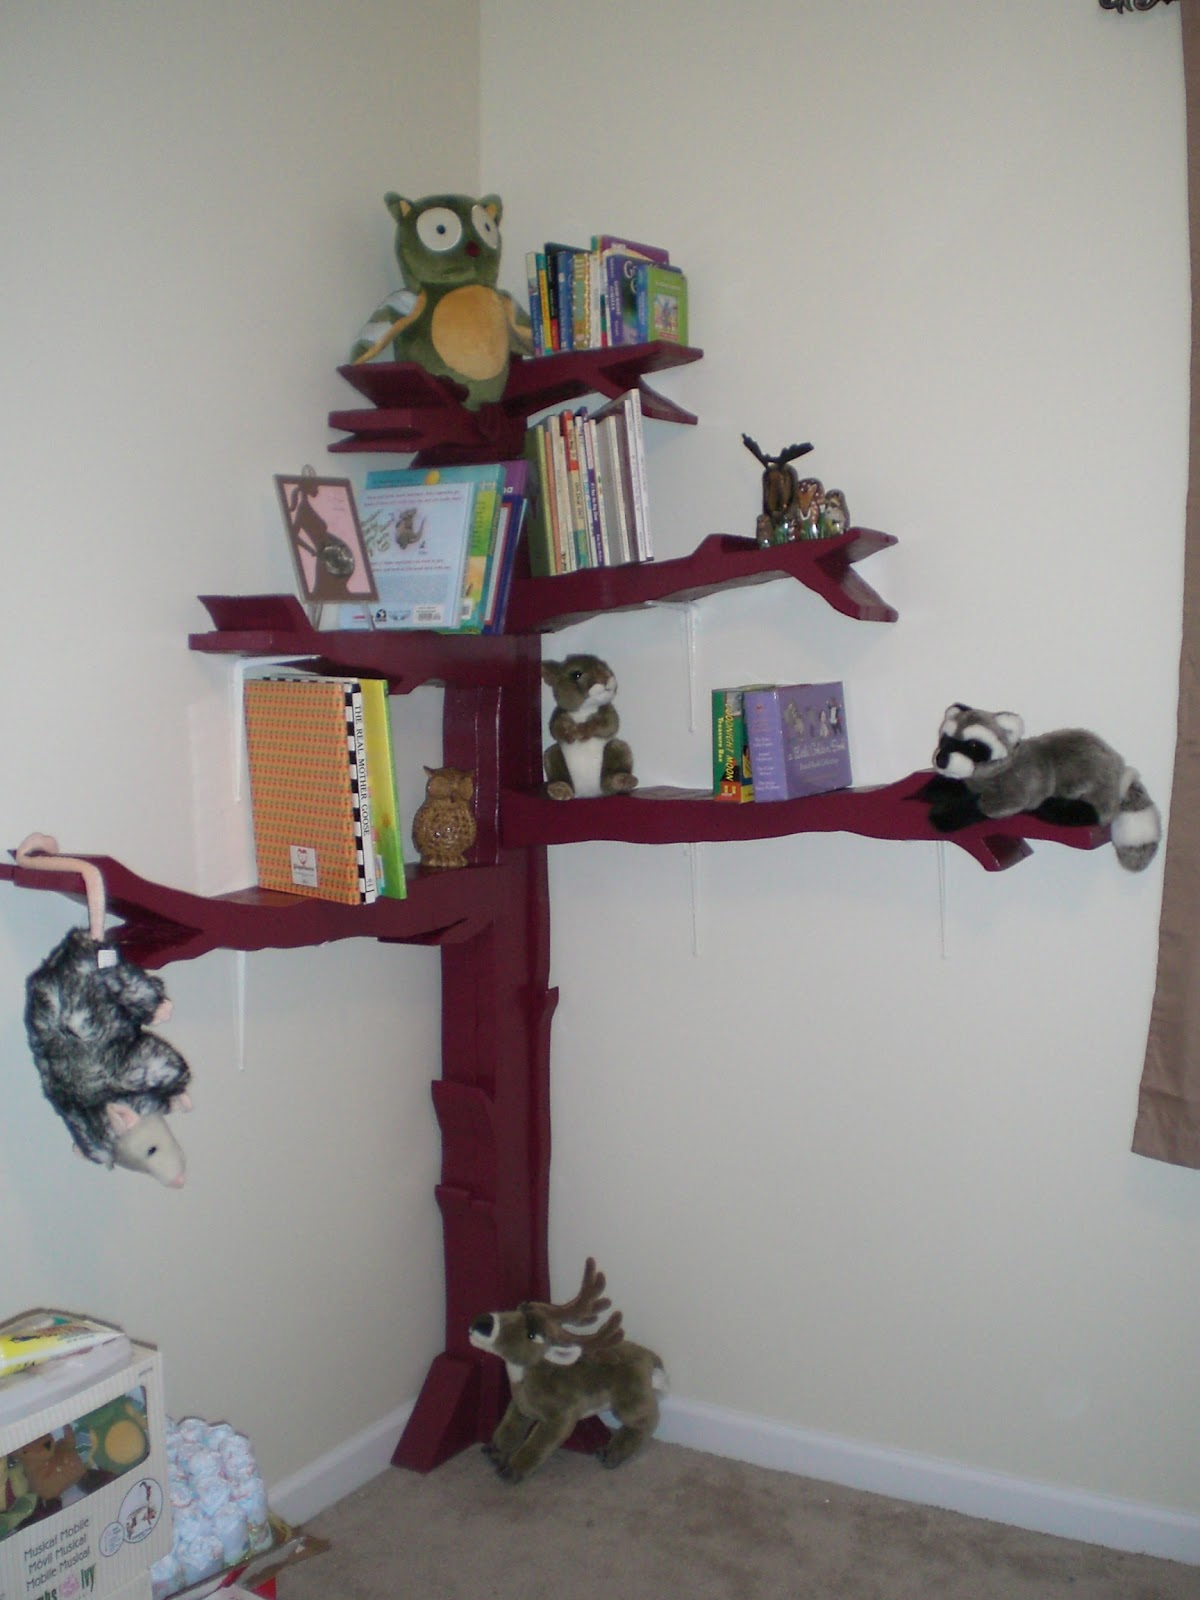 A-Squared: How To Make a Tree Bookshelf